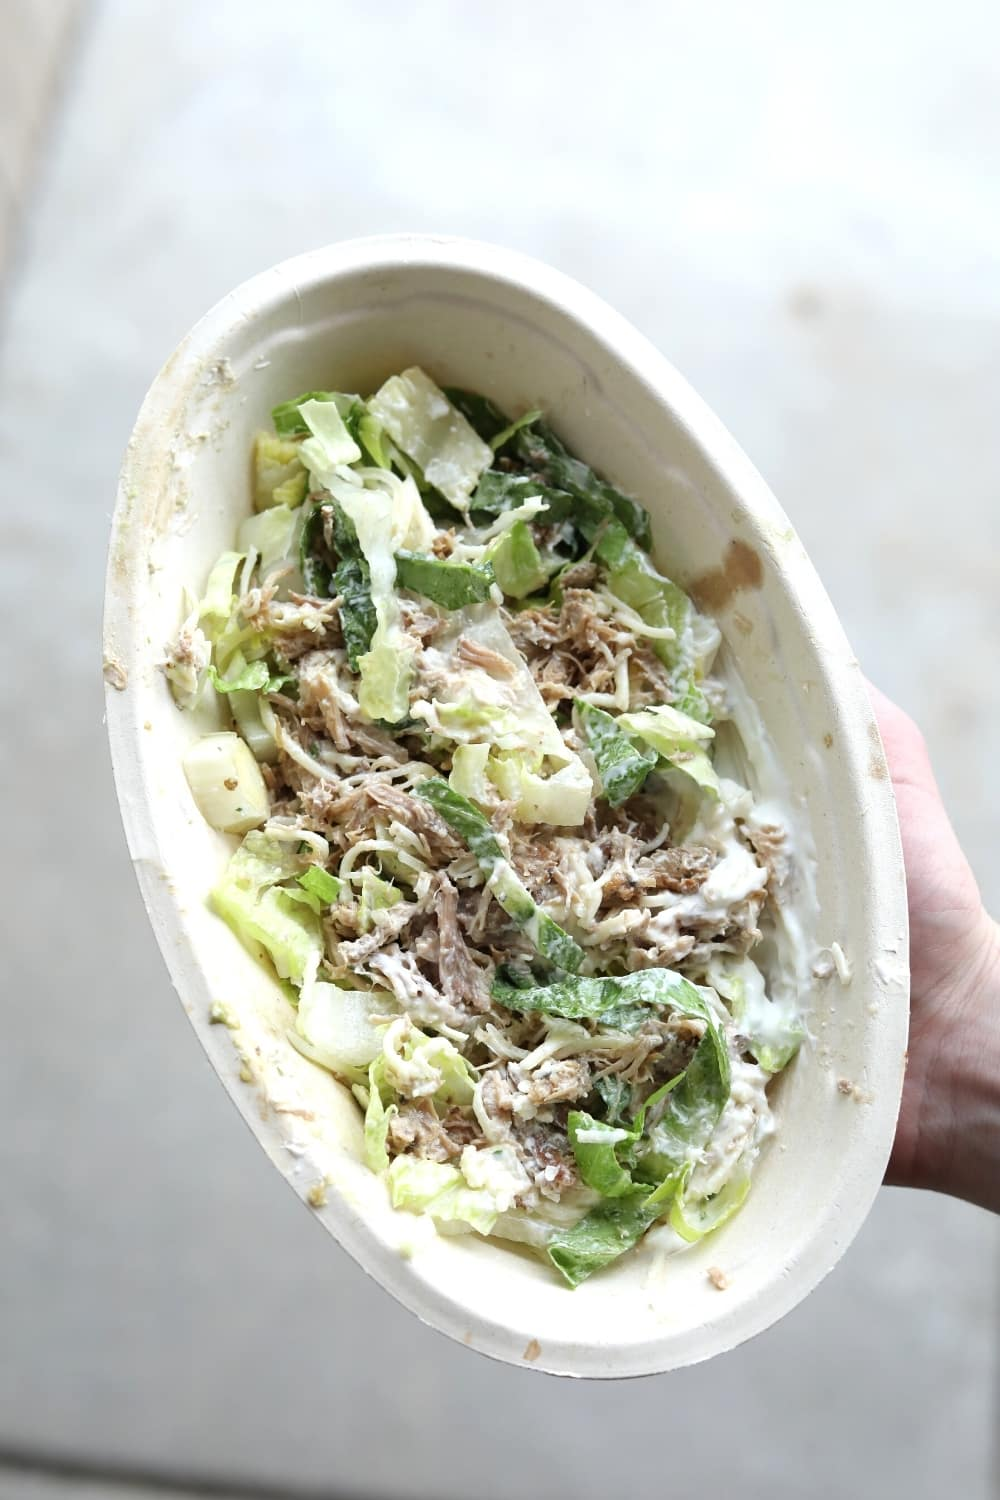 A hand holding a keto chipotle bowl with Carnitas, Romain lettuce, shredded cheese, and sour cream.